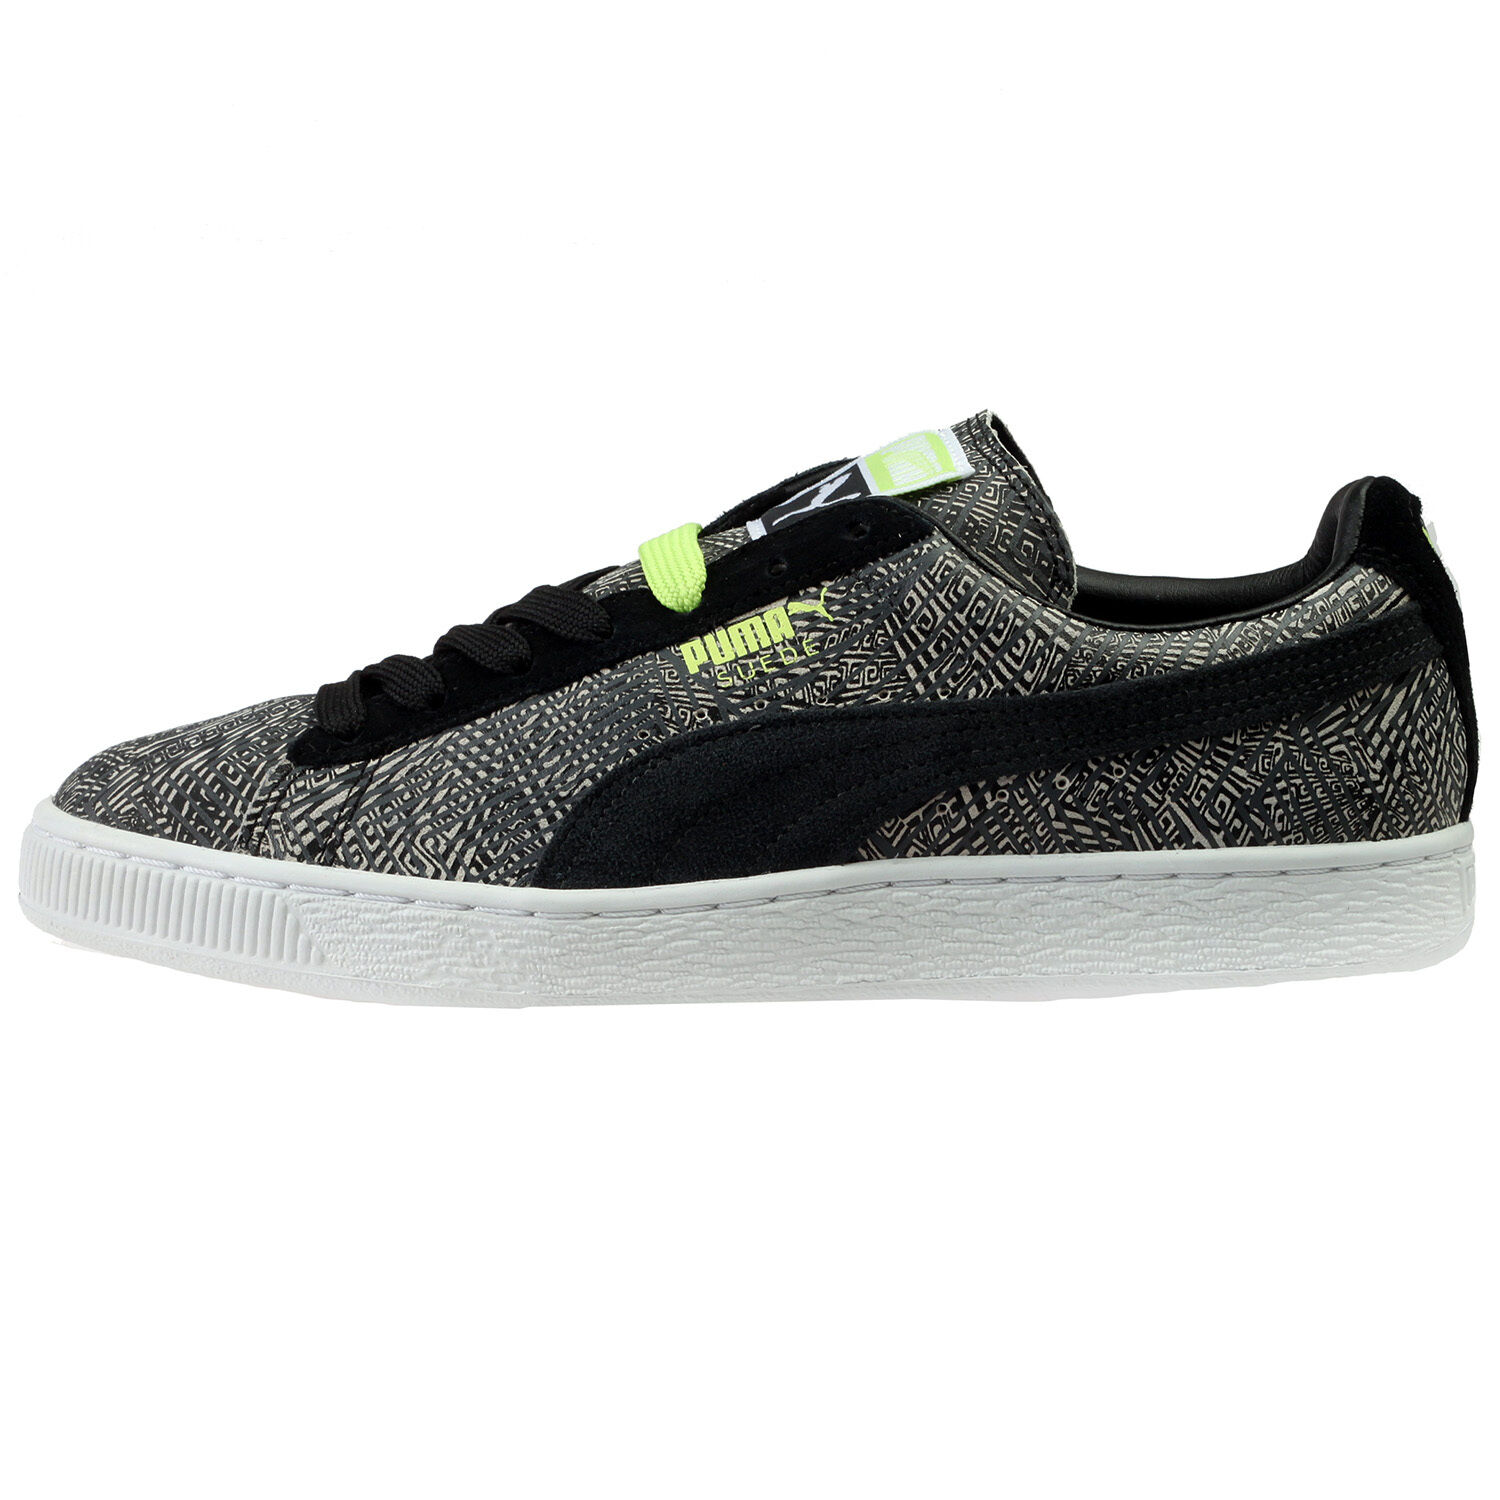 Puma Suede Mis-Match Mens 359407-01 Dark Shadow Black Athletic shoes Size 7.5